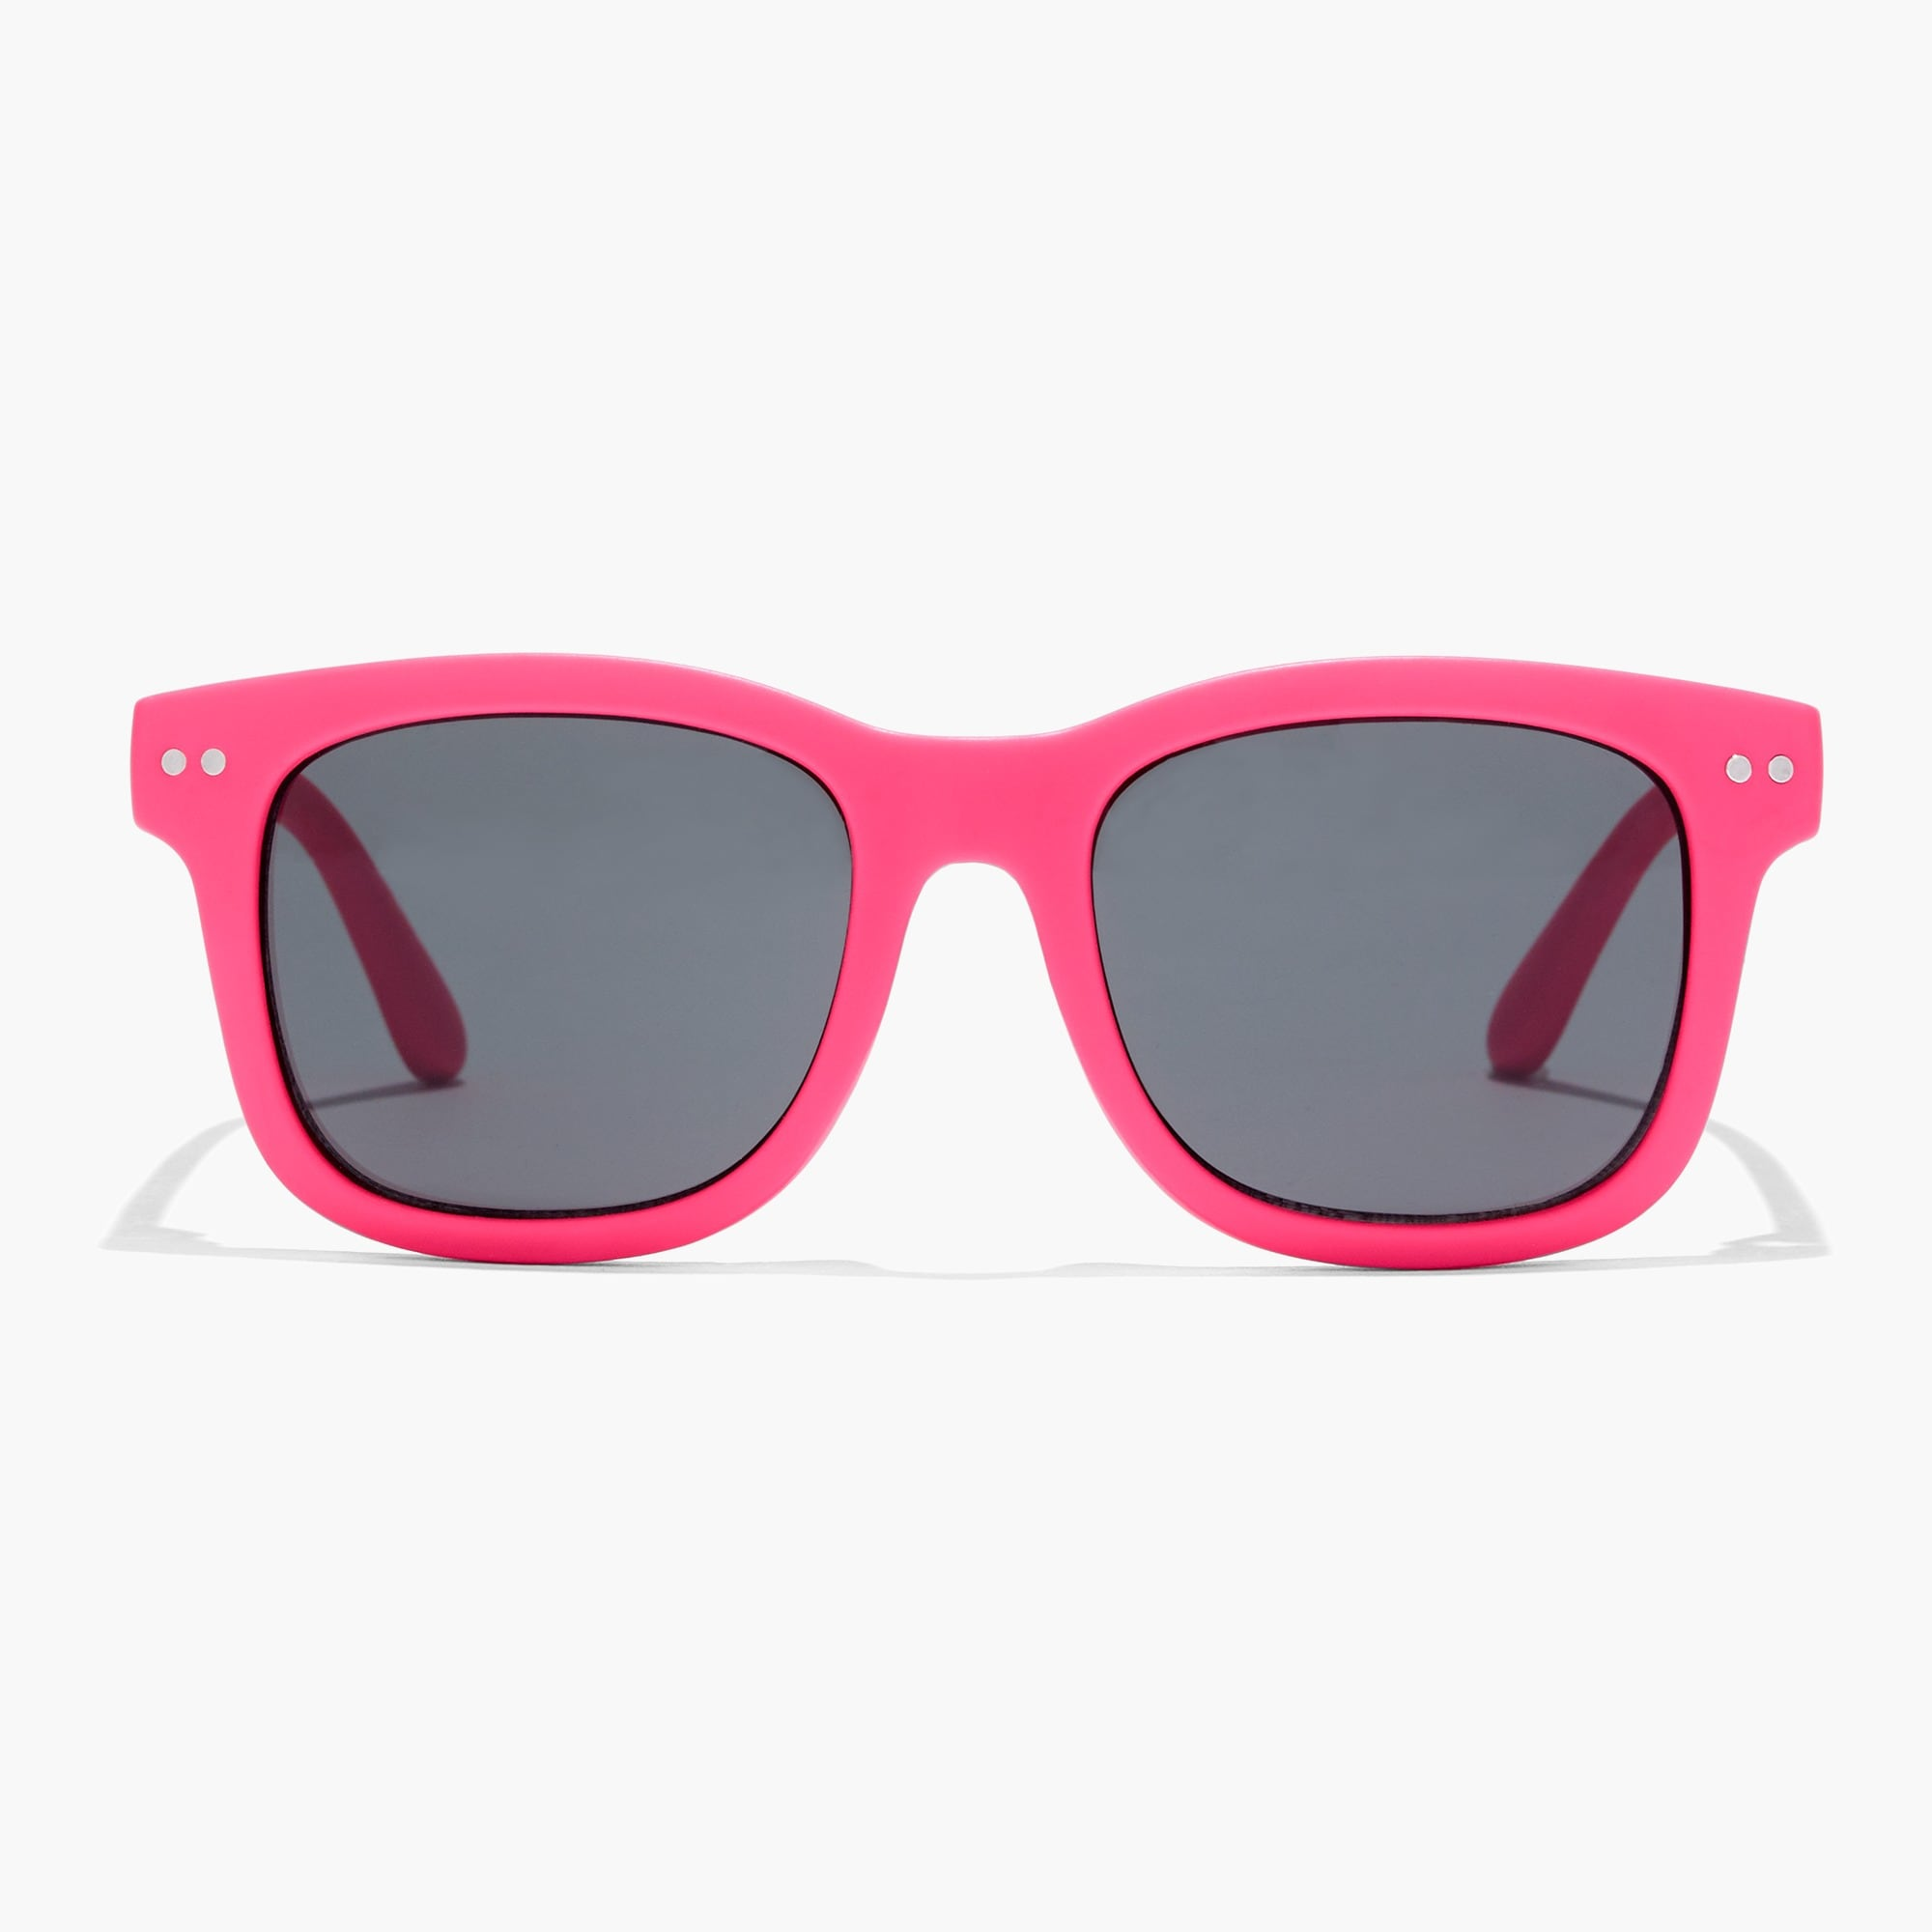 Kids' sunnies